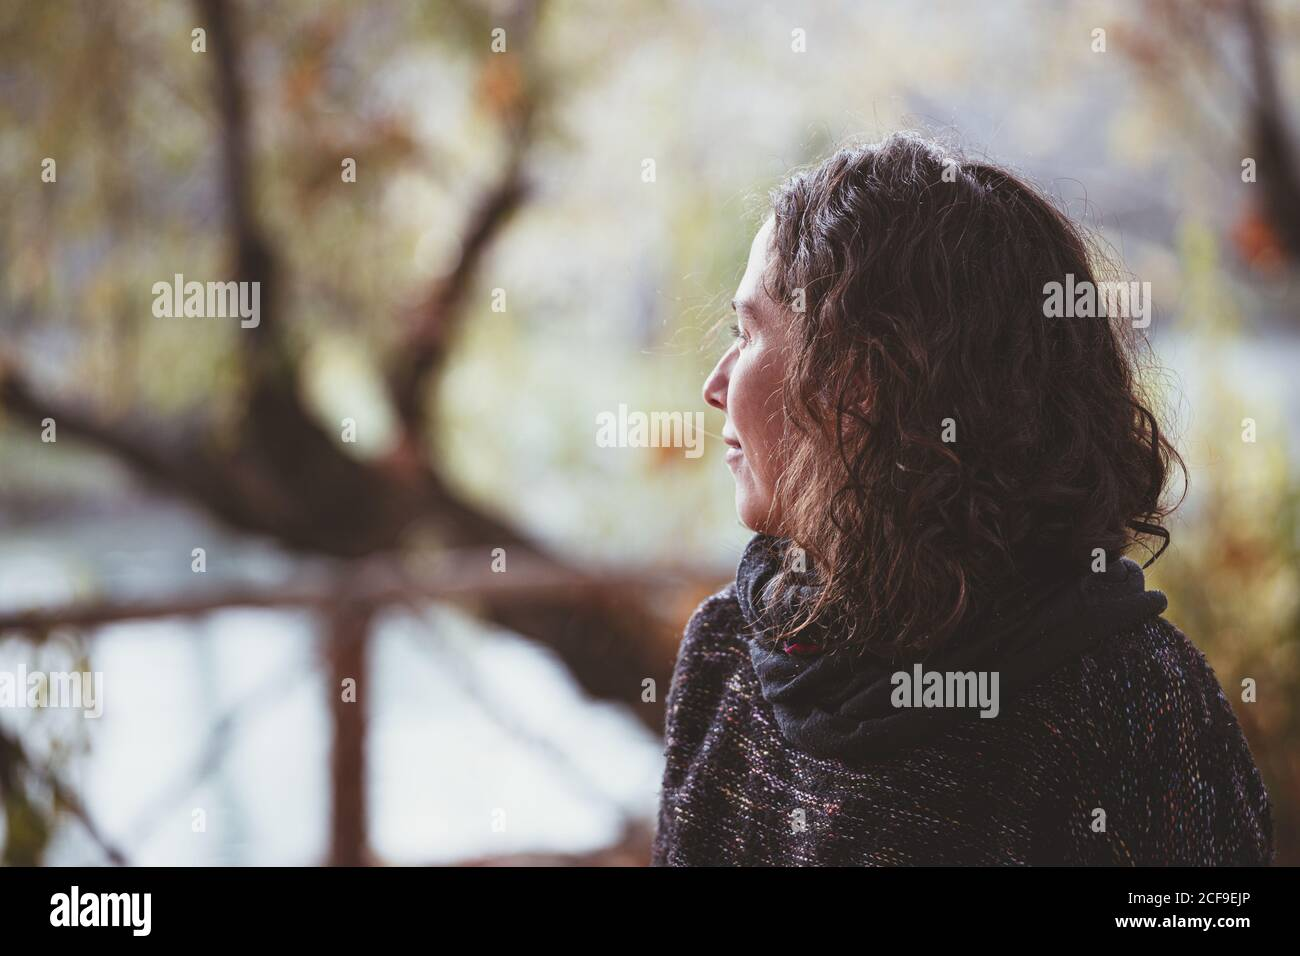 Adult lady with curly hair looking away and thinking while standing on blurred background of peaceful autumn park Stock Photo